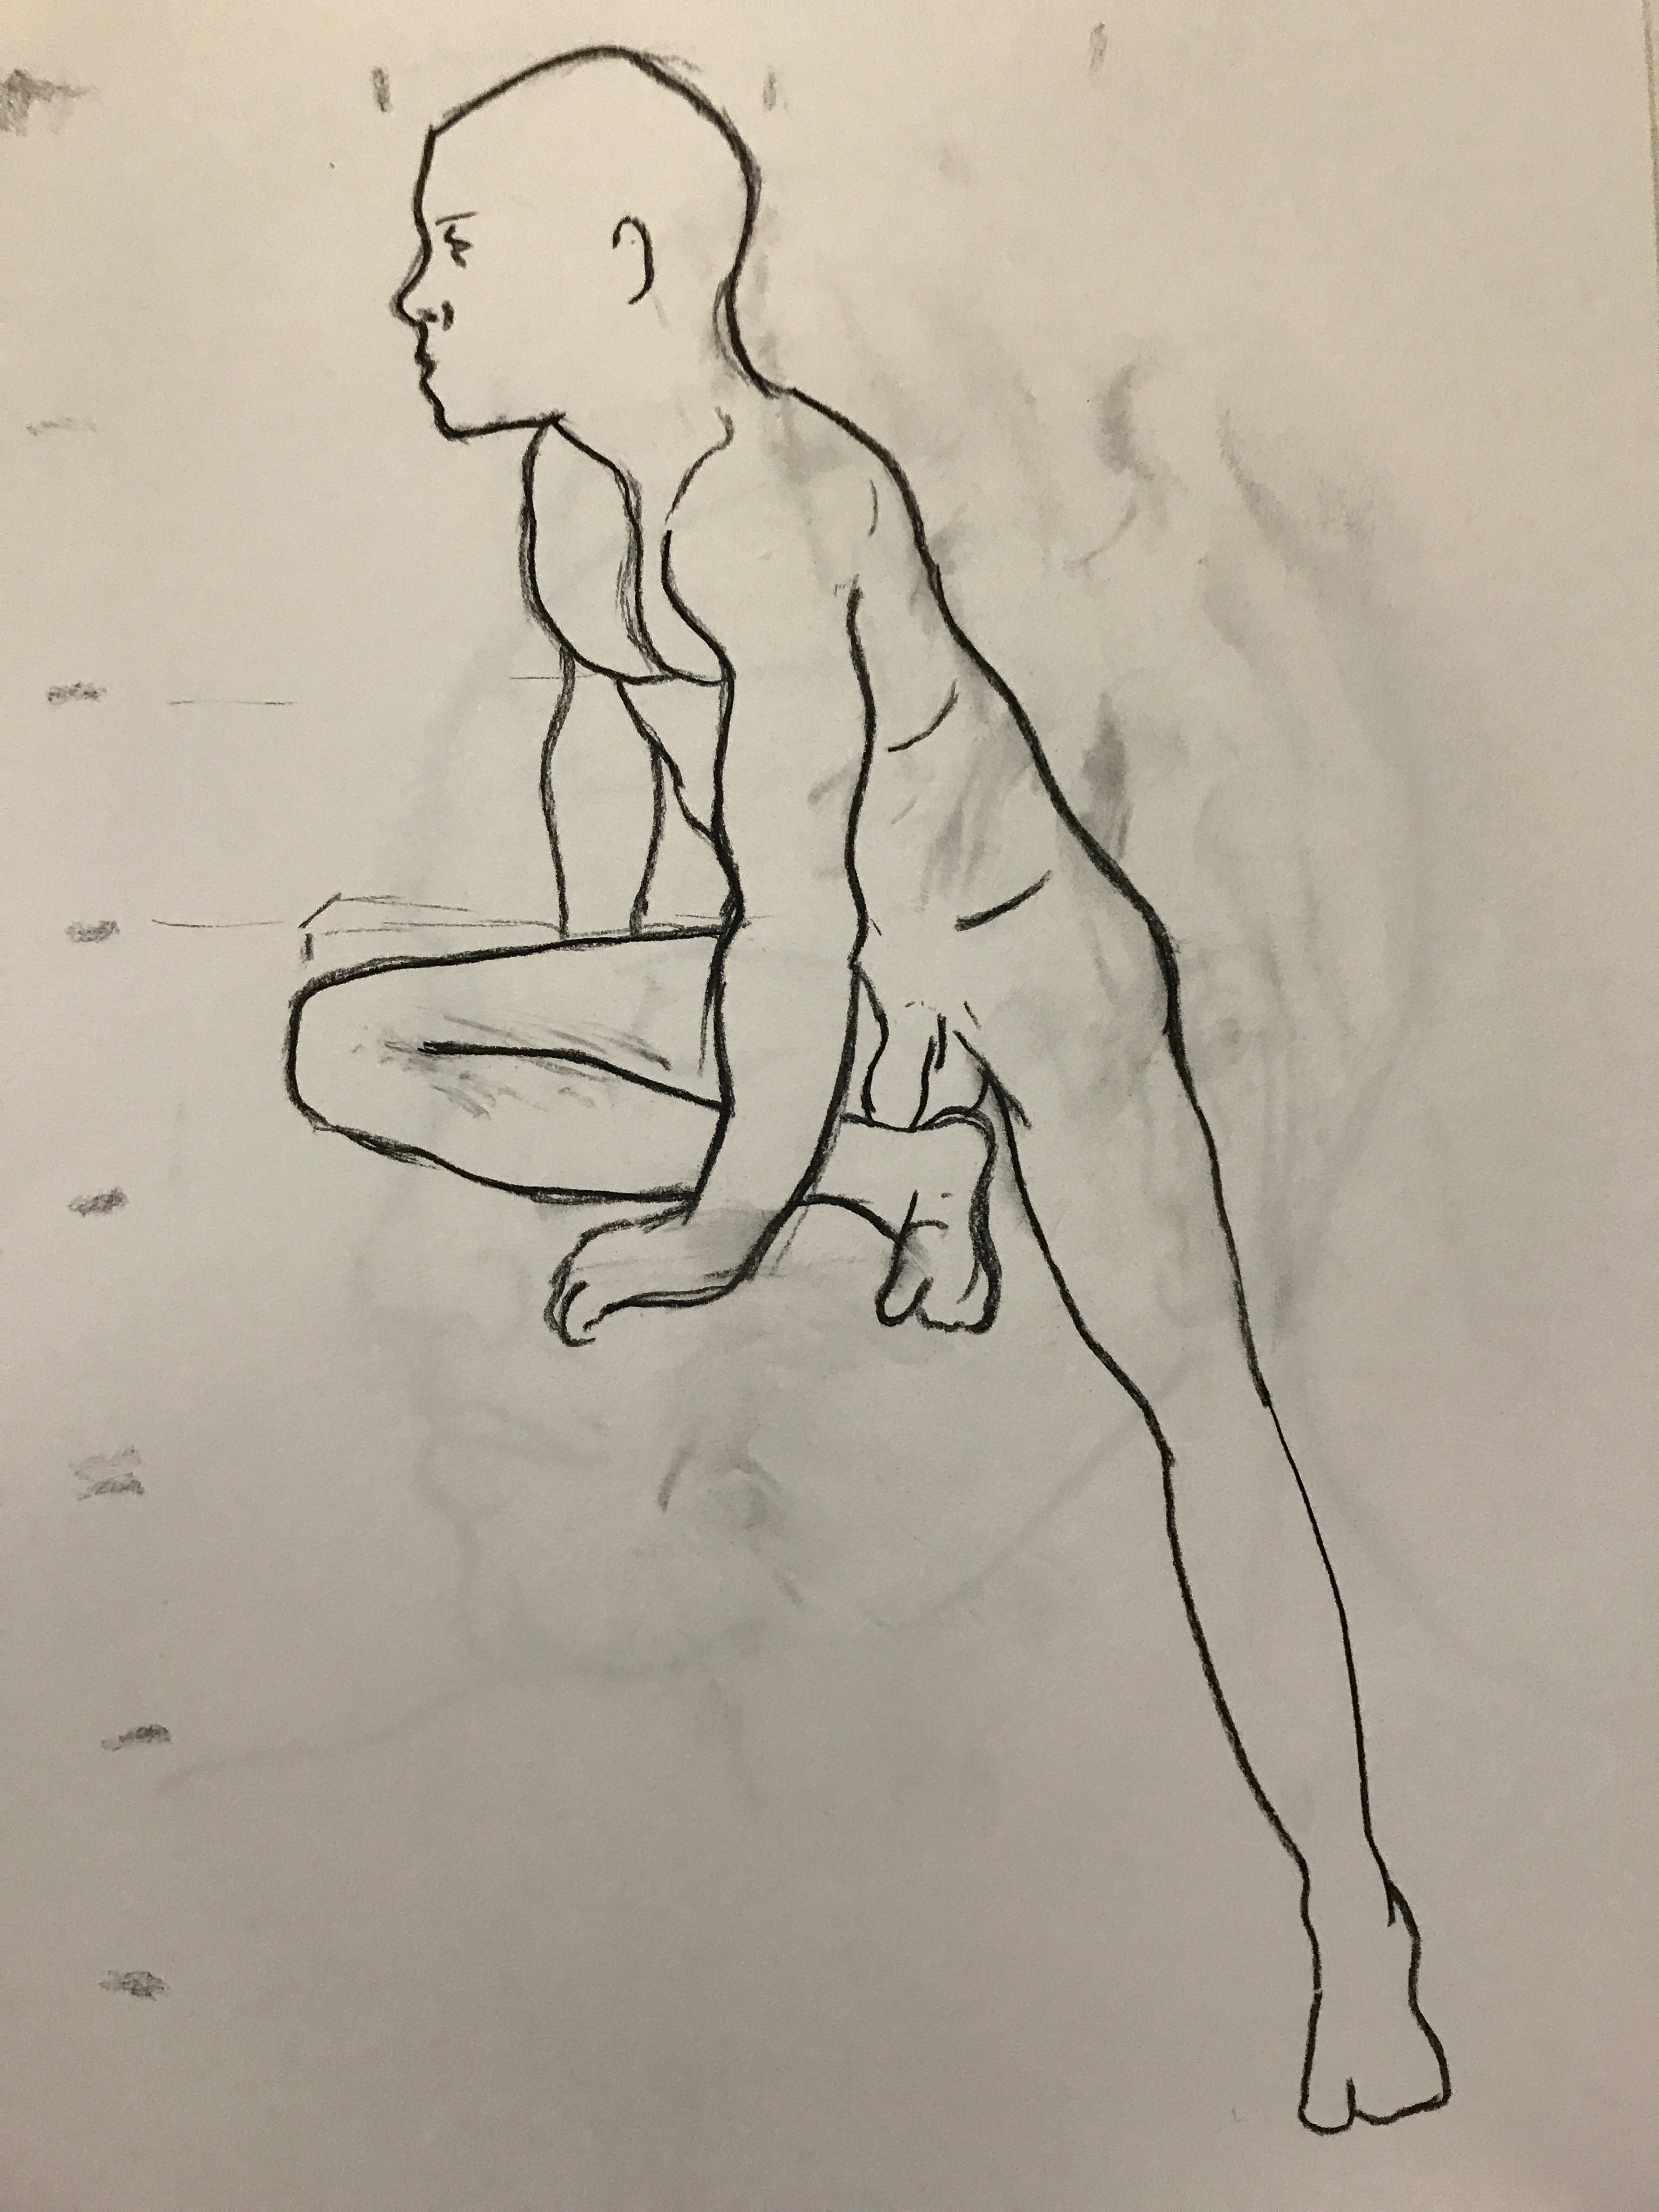 Leg extended crouch